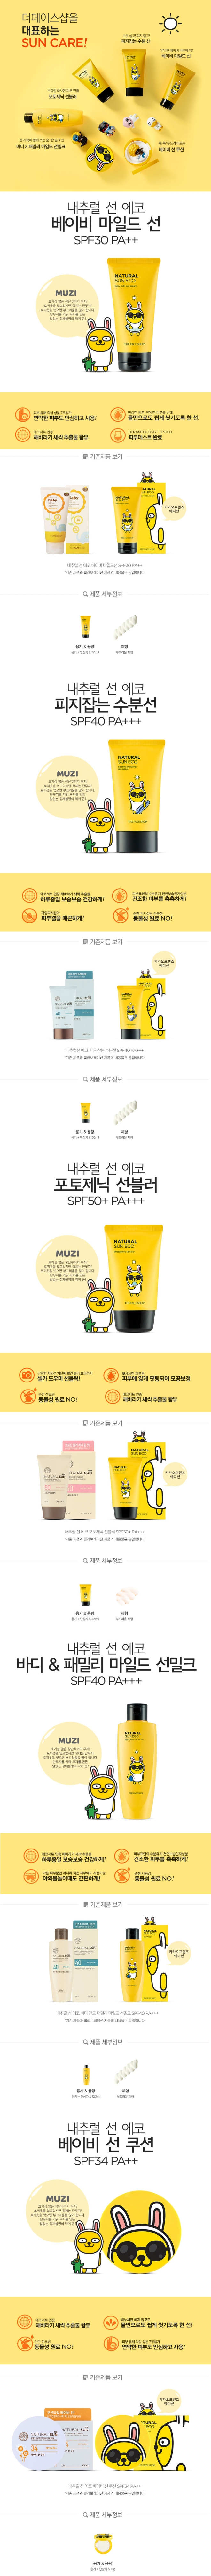 Thefaceshop x Kakao Friends - Sun Care